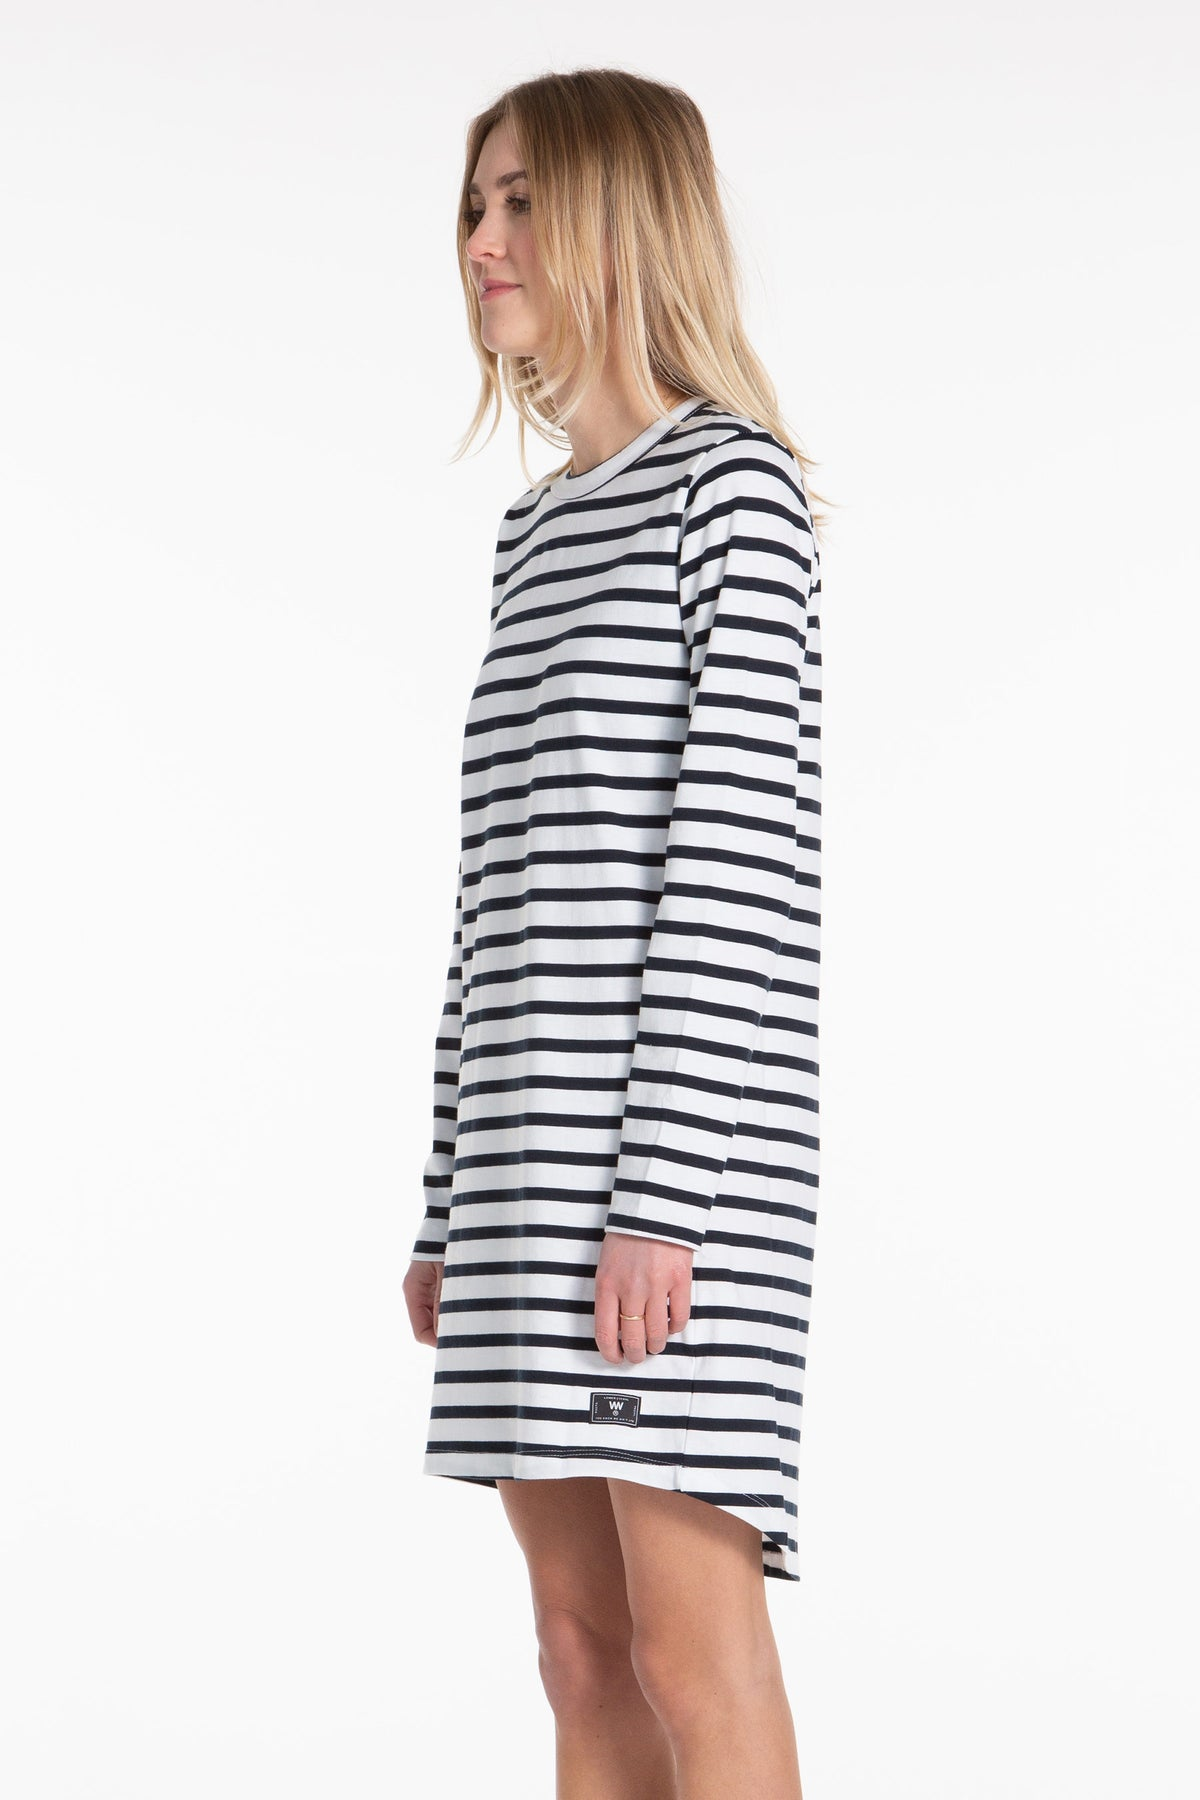 Organic LS Tee Dress - Navy/Stripe